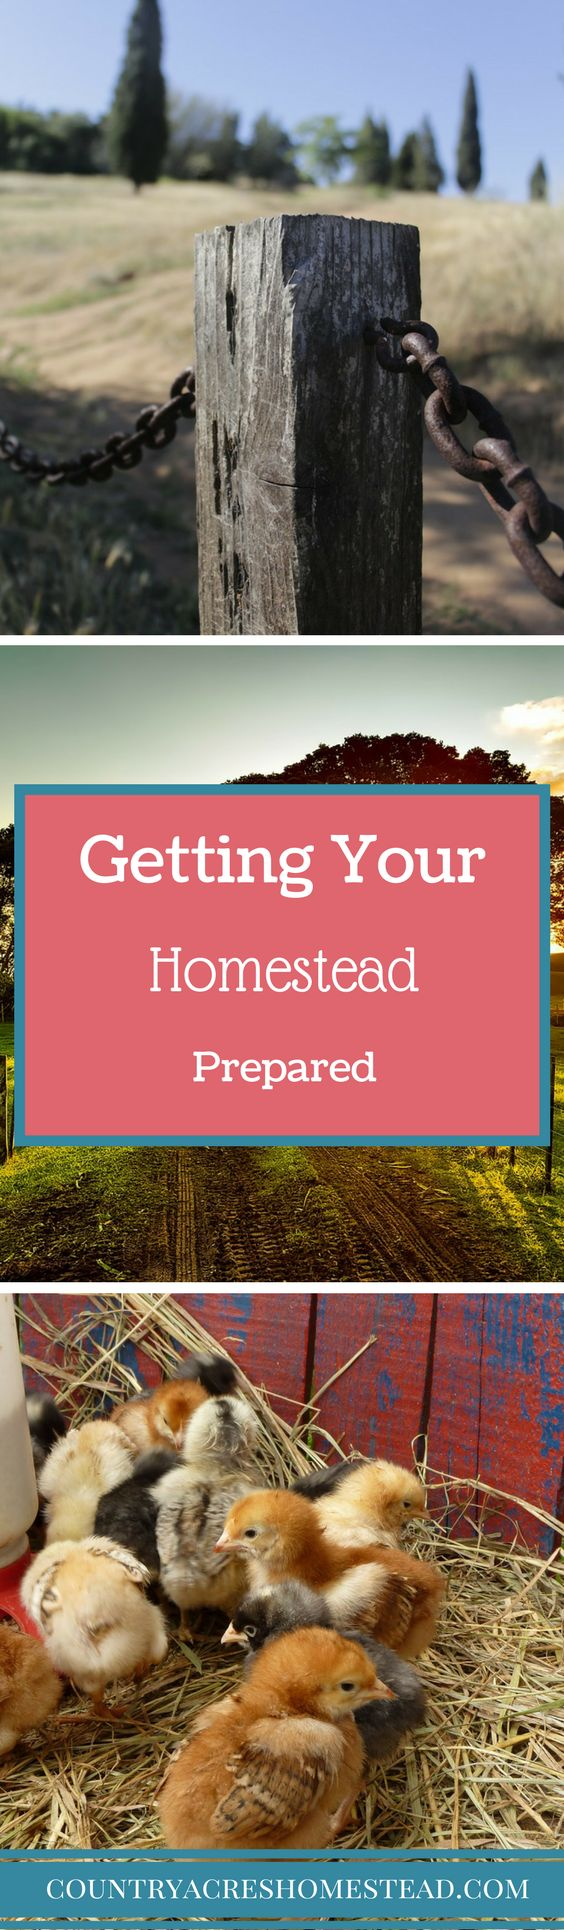 Getting Your Homestead Prepared. You never know when the Zombie Apocalypse is going to strike. Is your homestead prepared?